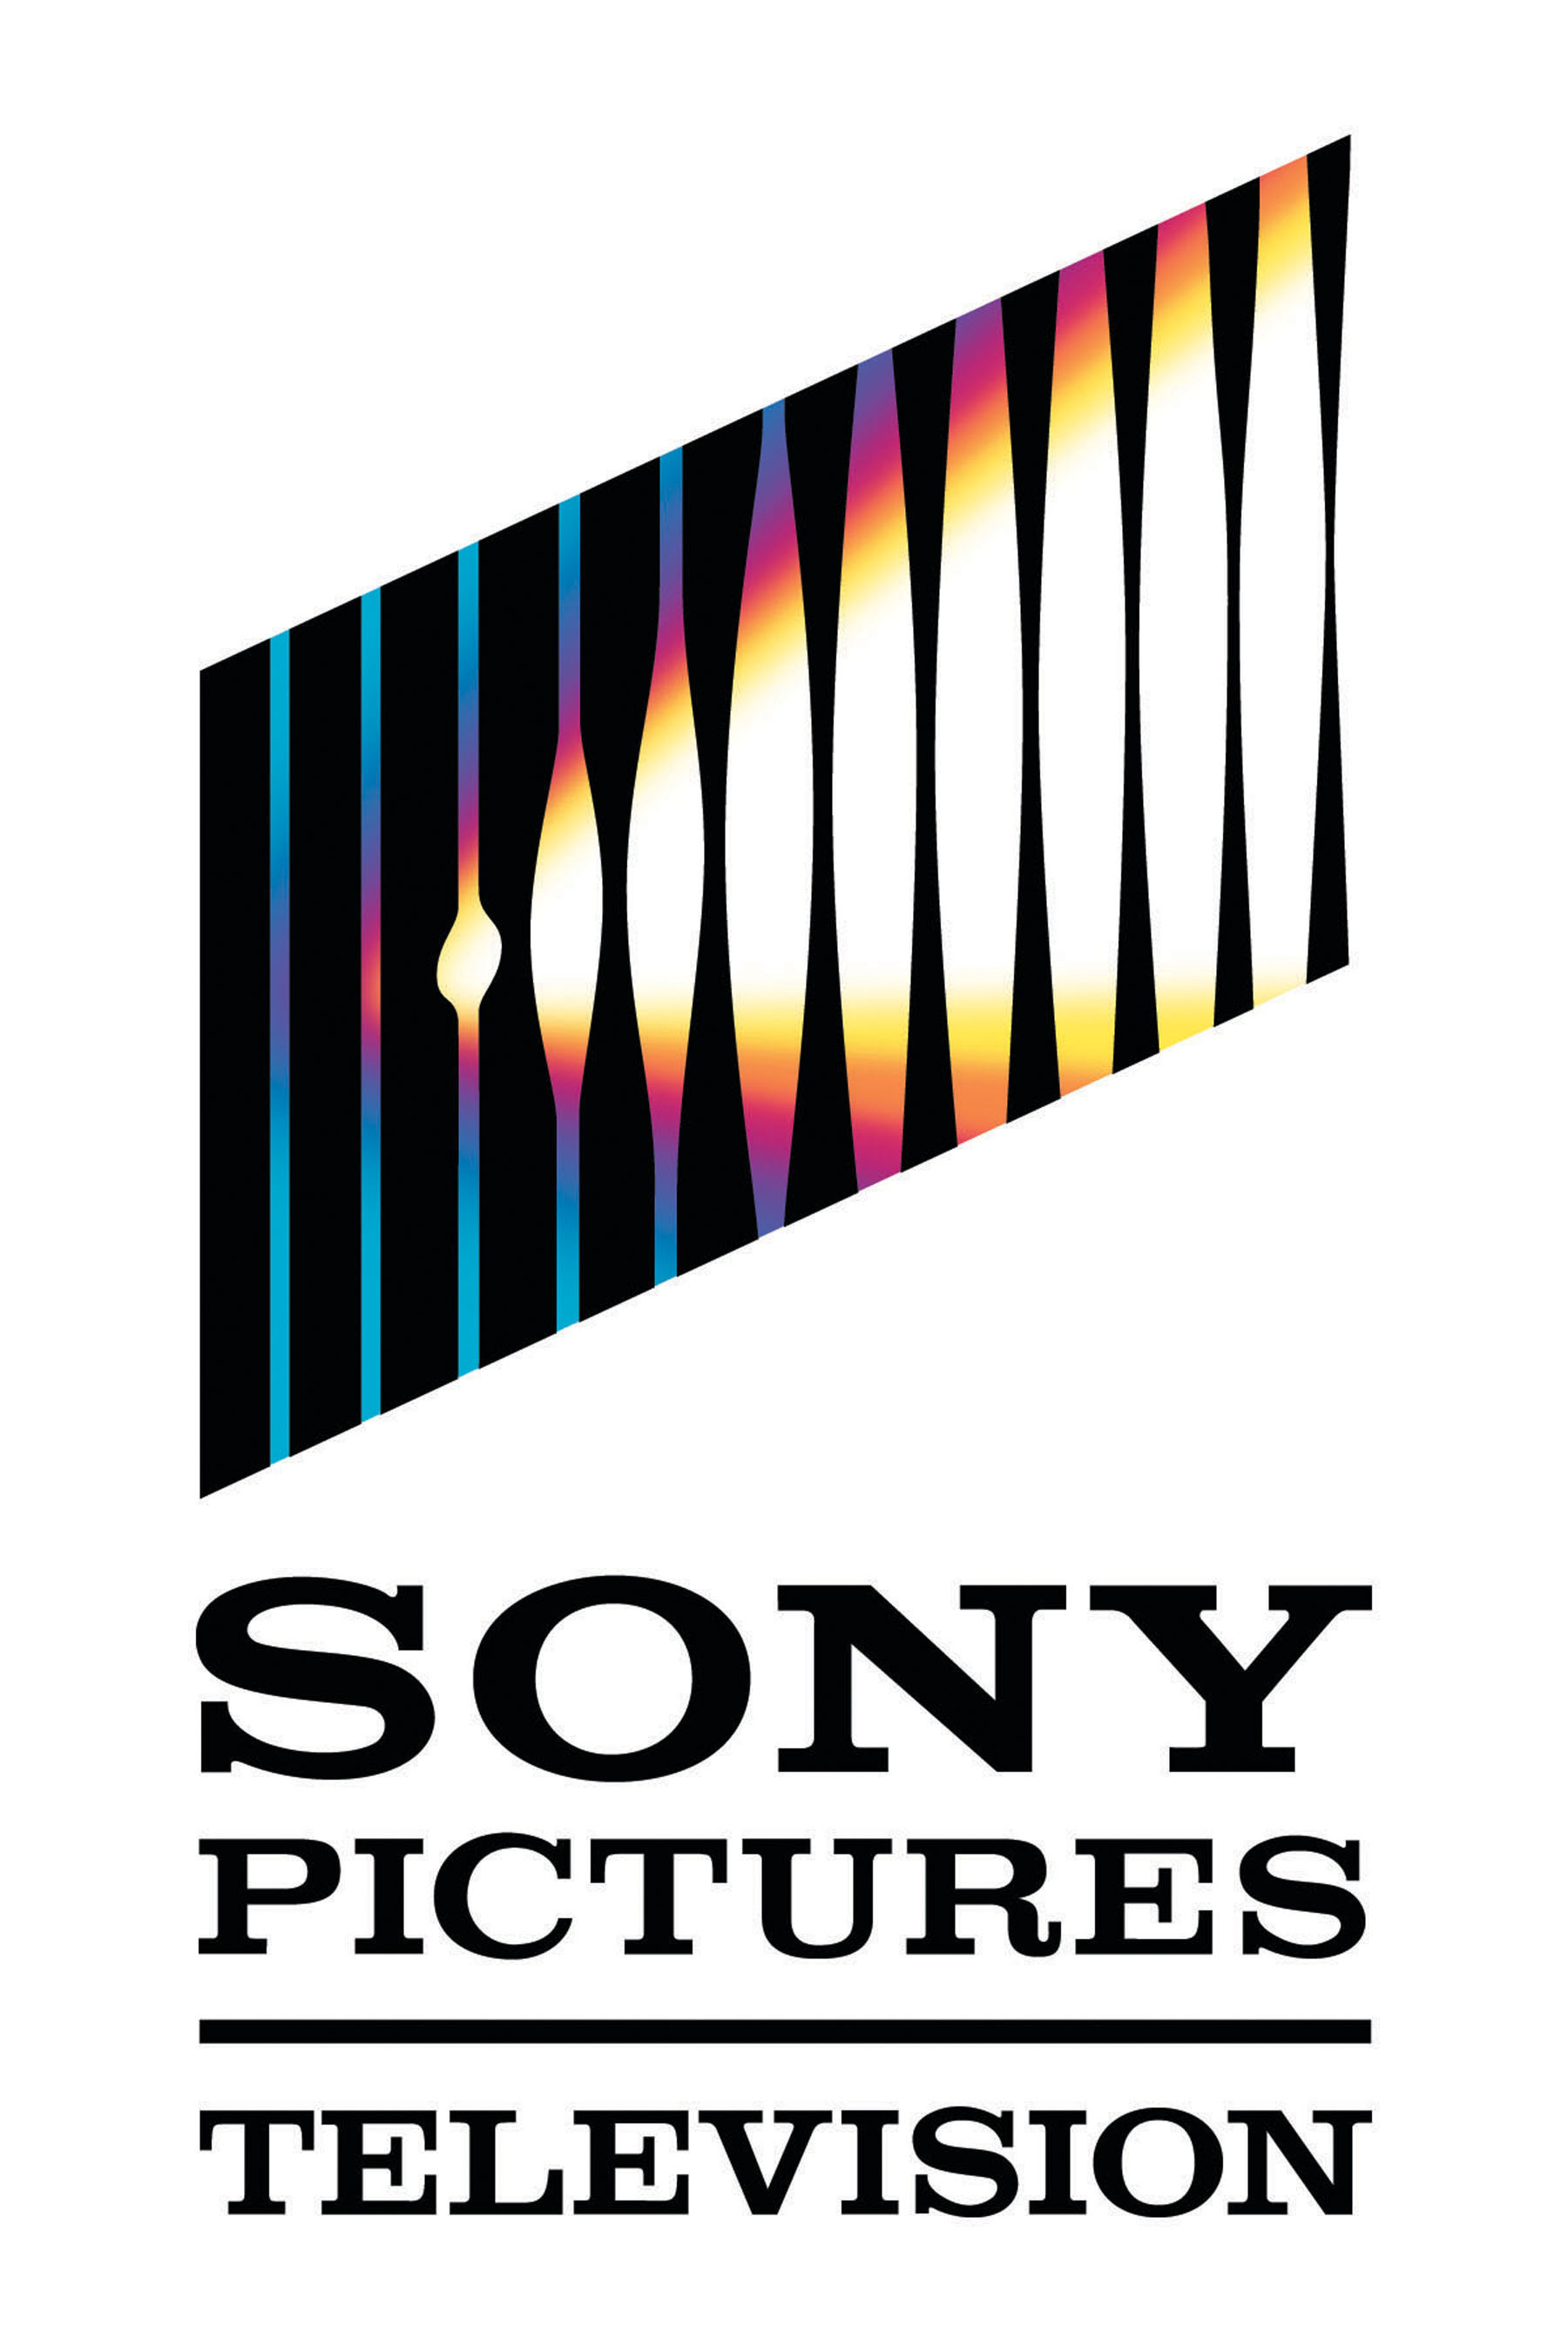 Sony Pictures Television logo.